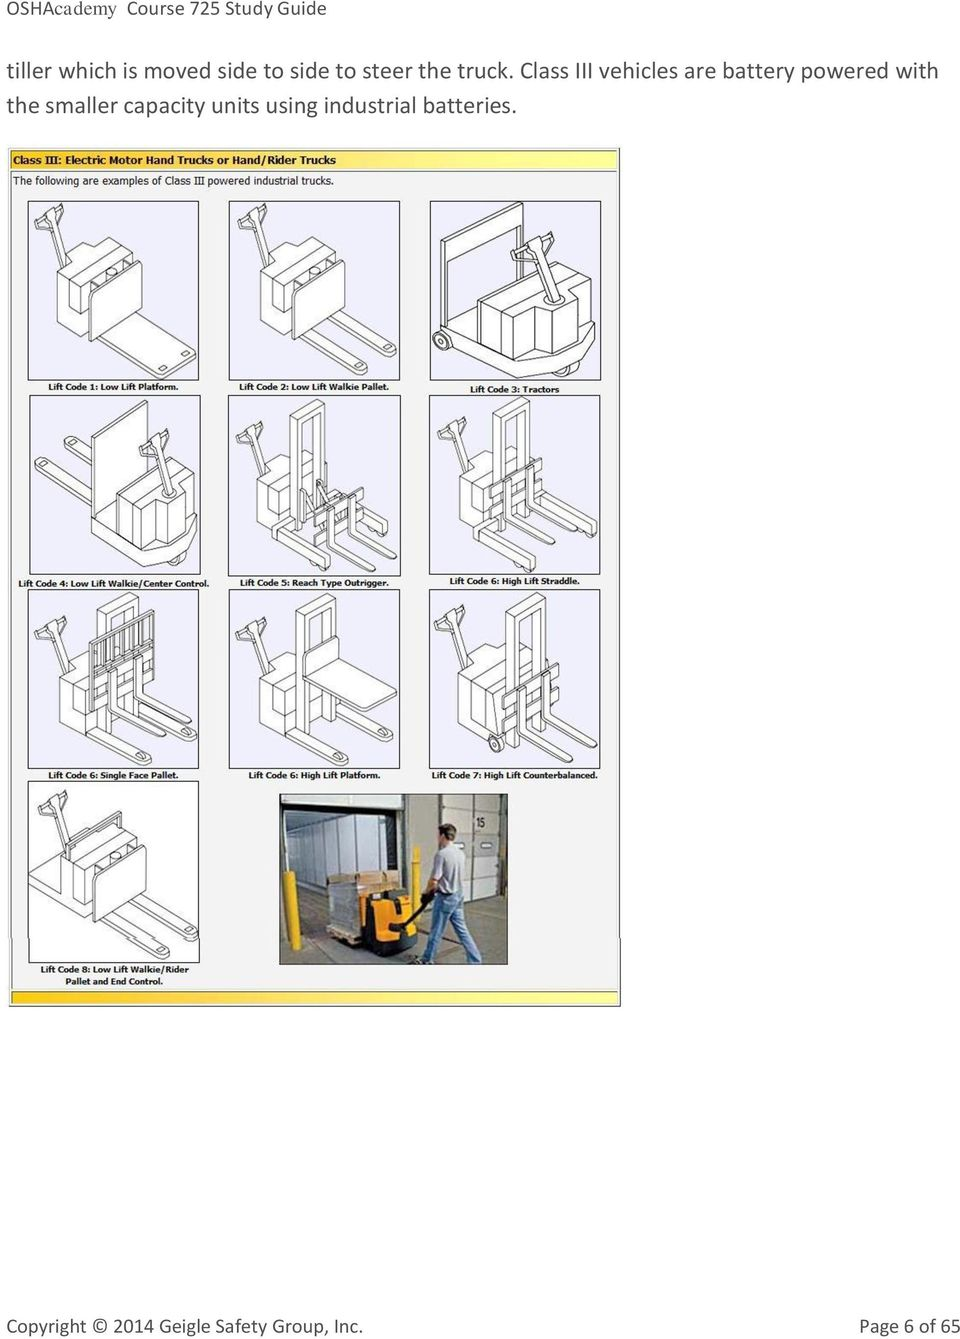 OSHAcademy Course 725 Study Guide  Forklift Safety - PDF